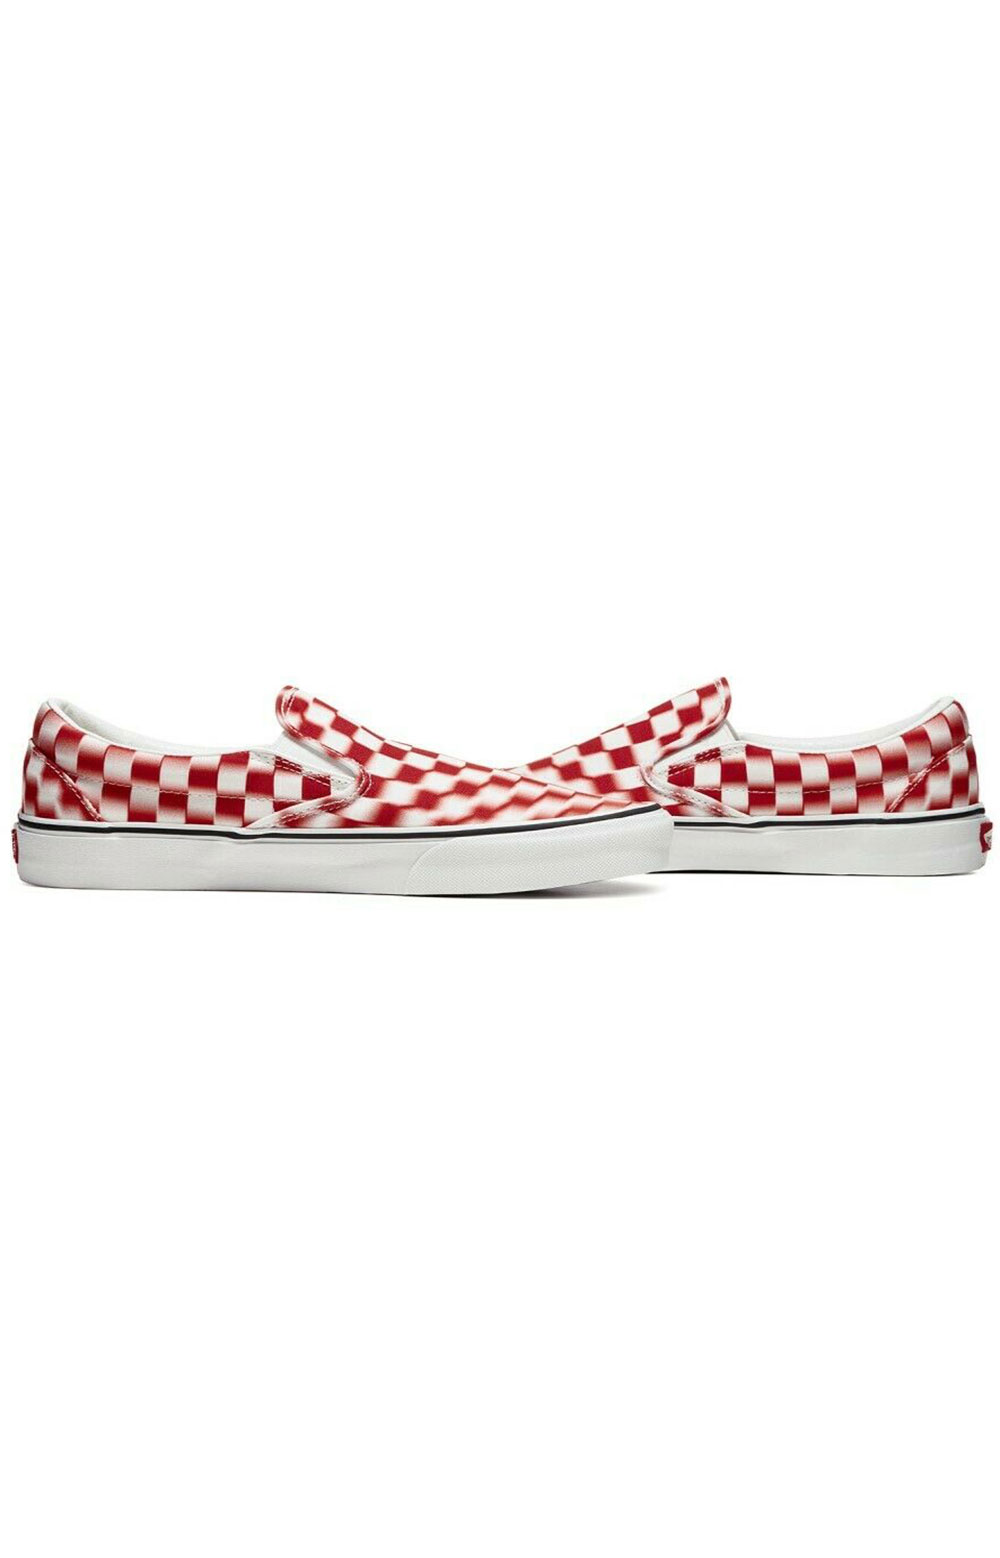 (U3817Z) Blur Check Classic Slip-On Shoe - Ture White/Red 2